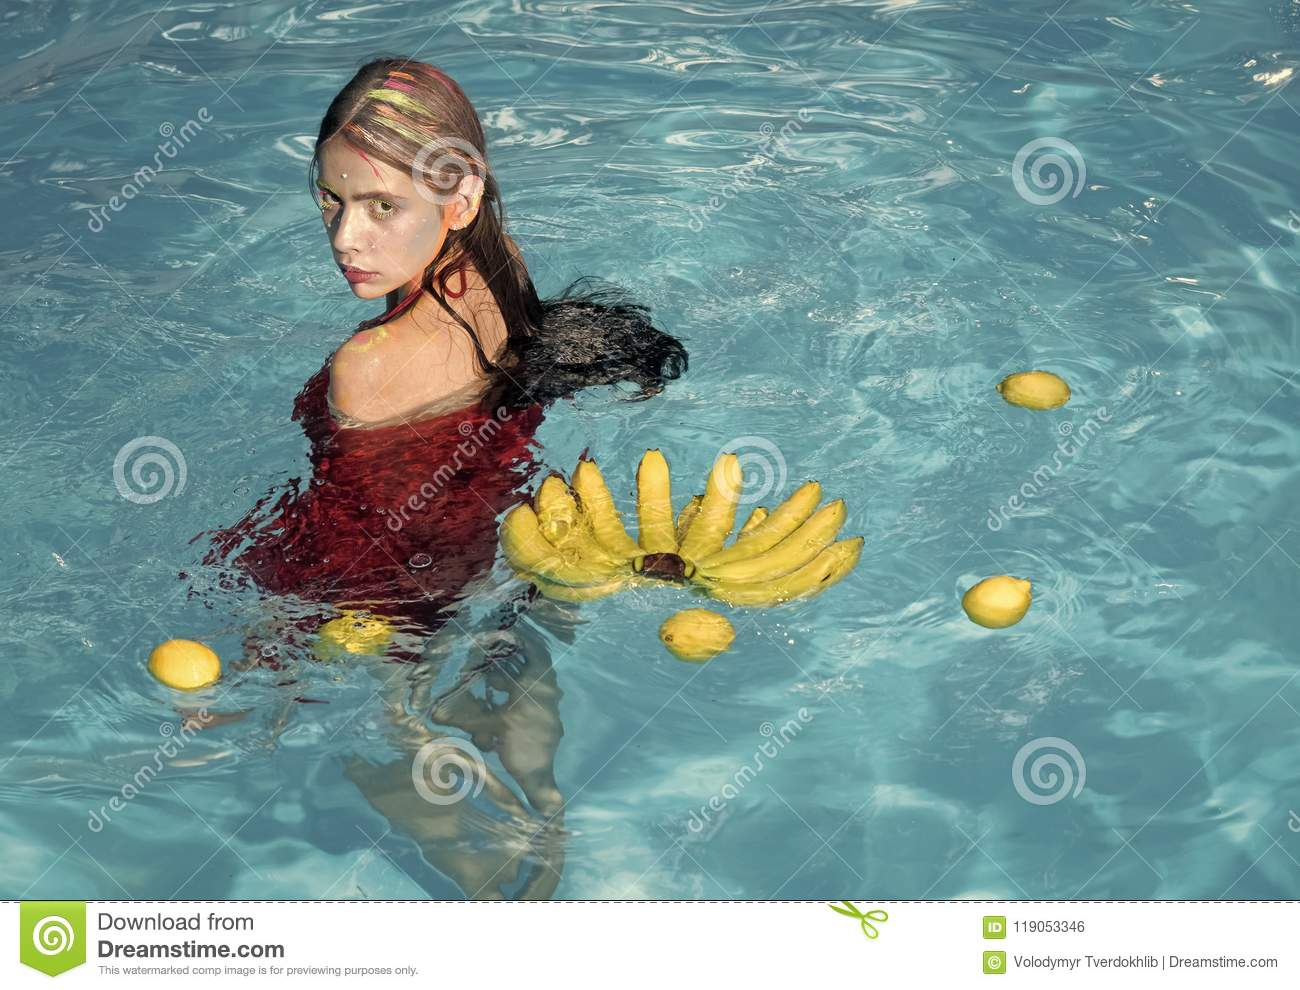 Vitamins and health. Summer vacation and travel to ocean. Vitamin in banana at girl sitting near water. Woman relax in